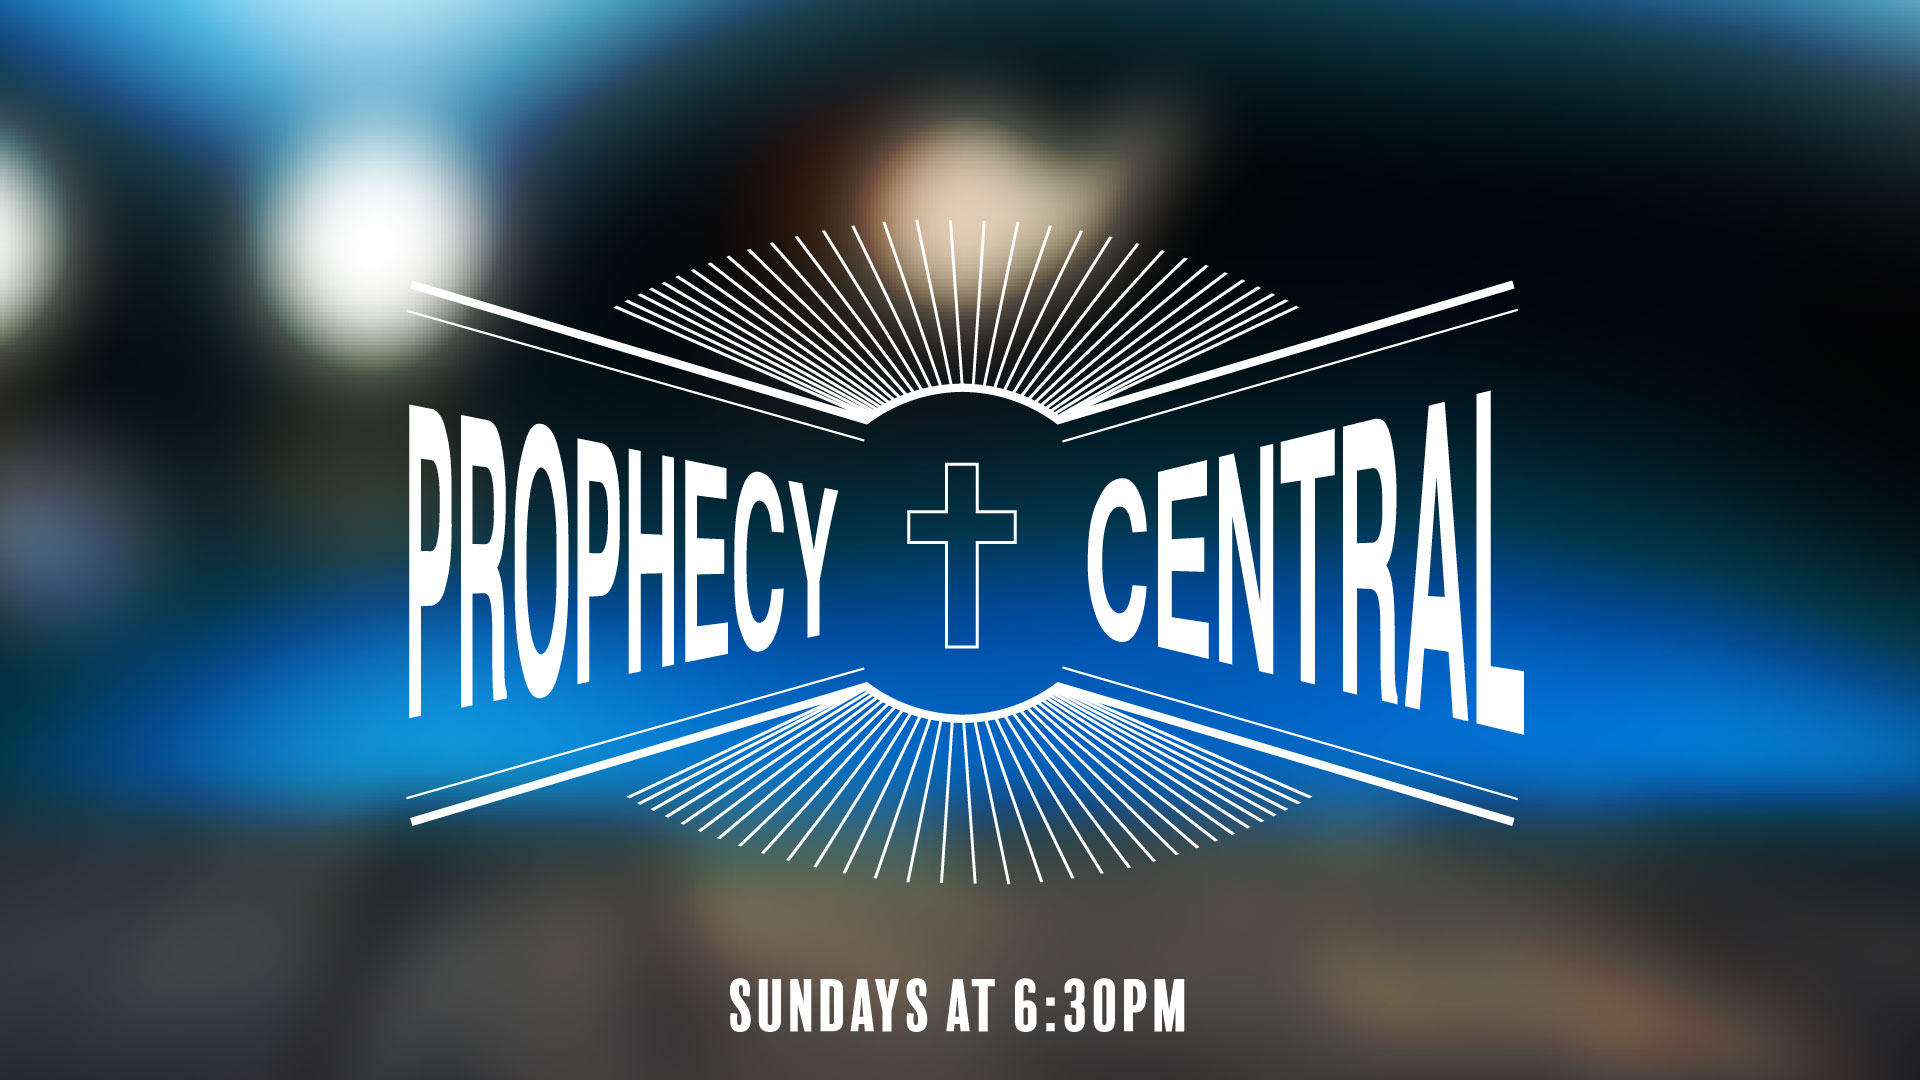 Prophecy-Central-Event